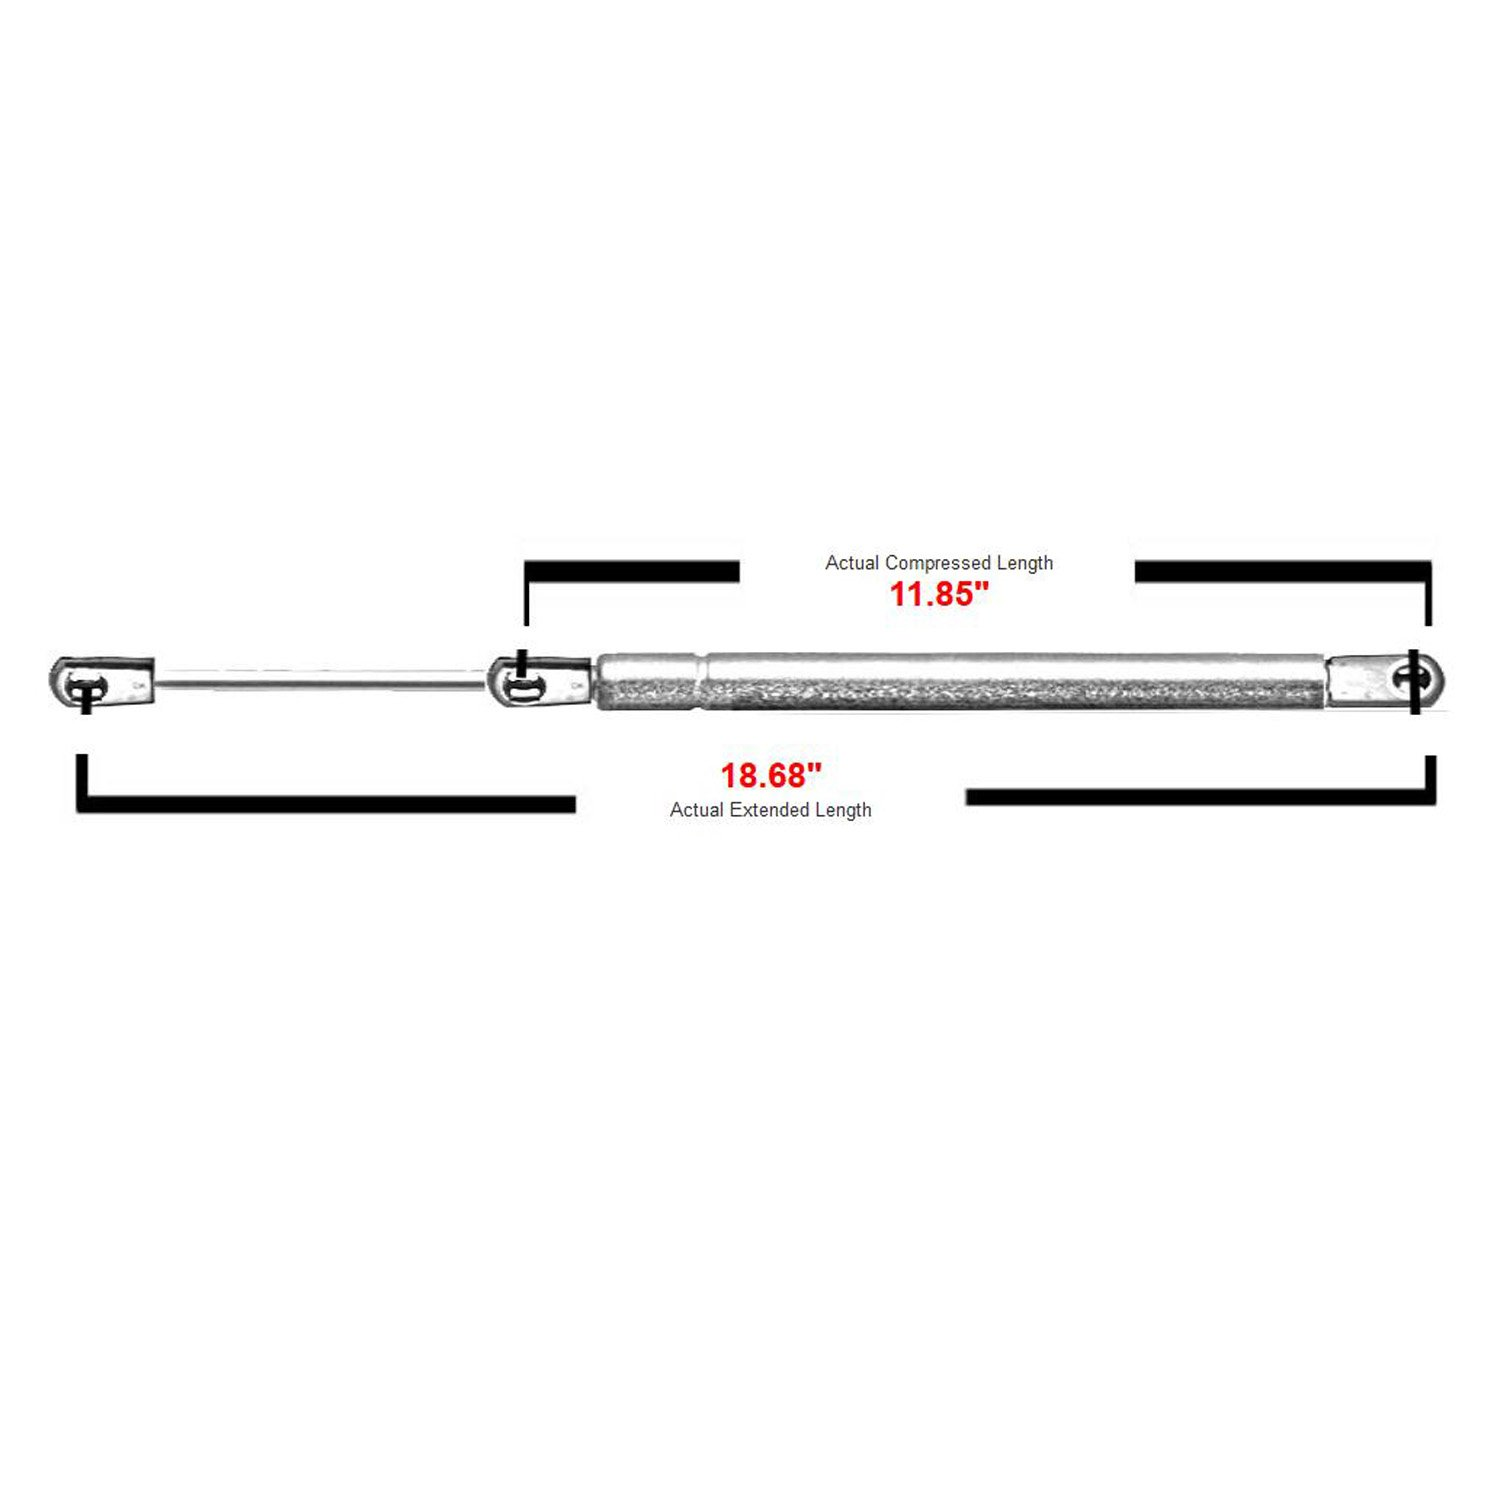 2 Pcs Front Hood Lift Supports Struts Rods Gas Springs For 2003-2006 Lincoln Navigator 6306 SG304075 TadaMark